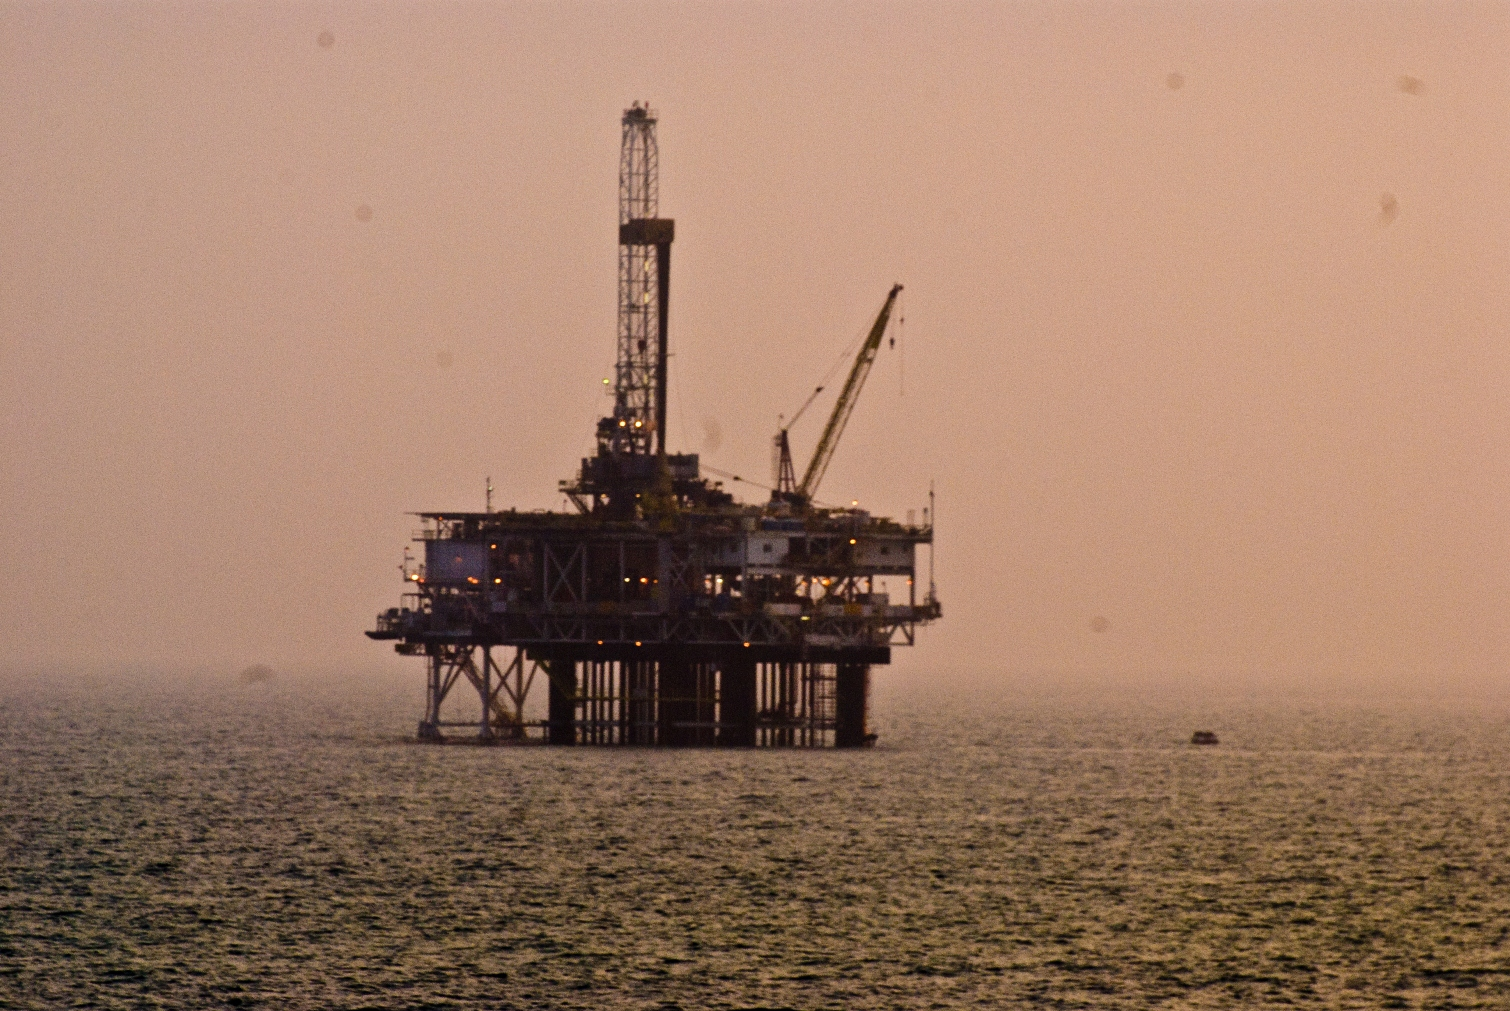 New Zealand One Step Closer to Unlocking Oil and Gas Potential